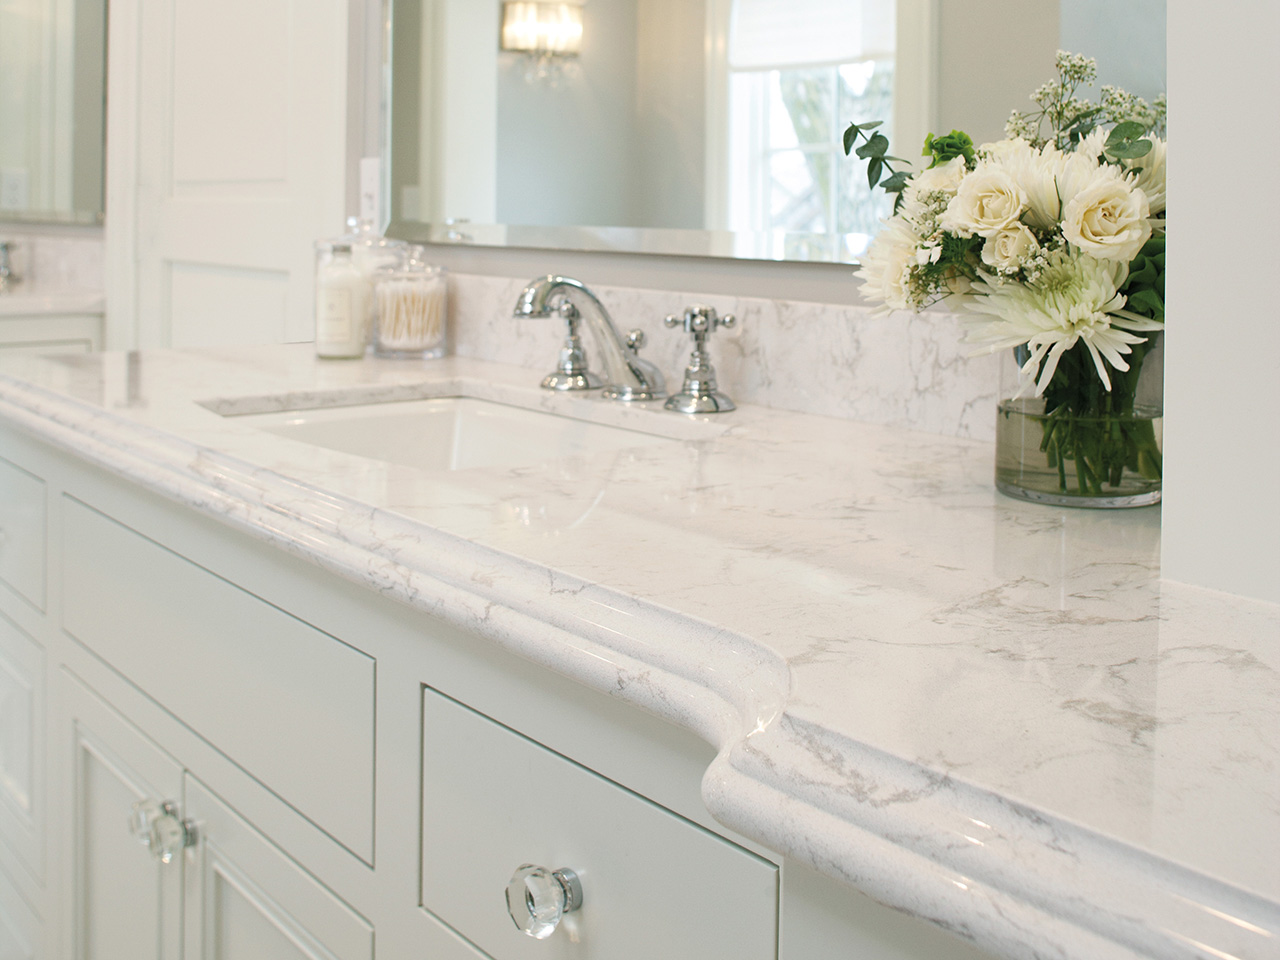 white-ceramic-sink-vanity-with-white-cam